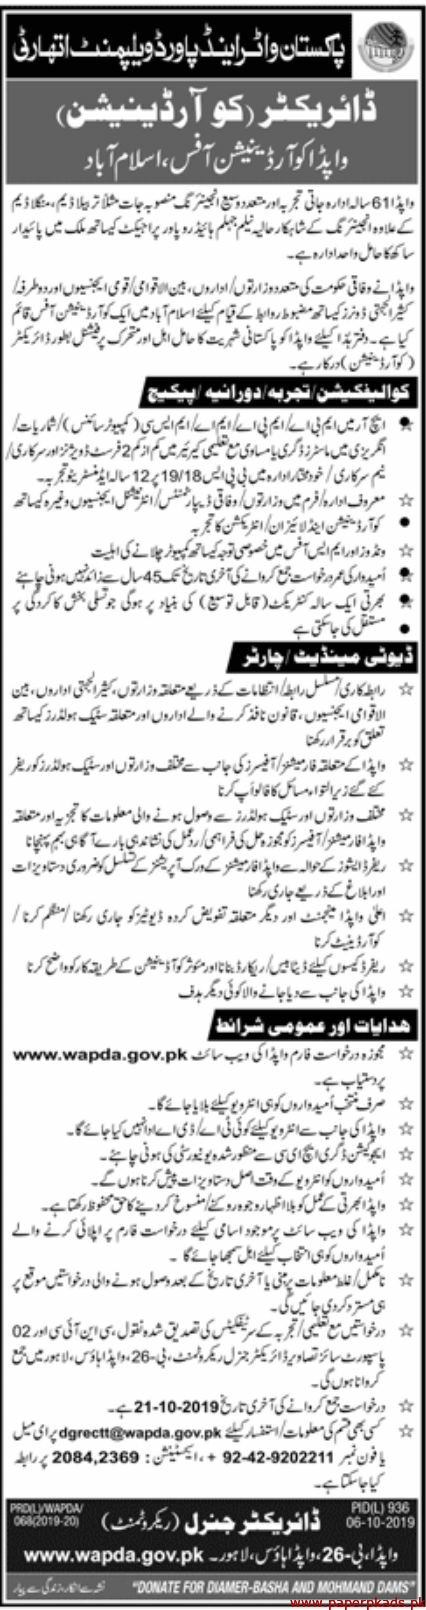 Pakistan Water and Power Development Auhtority WAPDA Jobs 2019 Latest